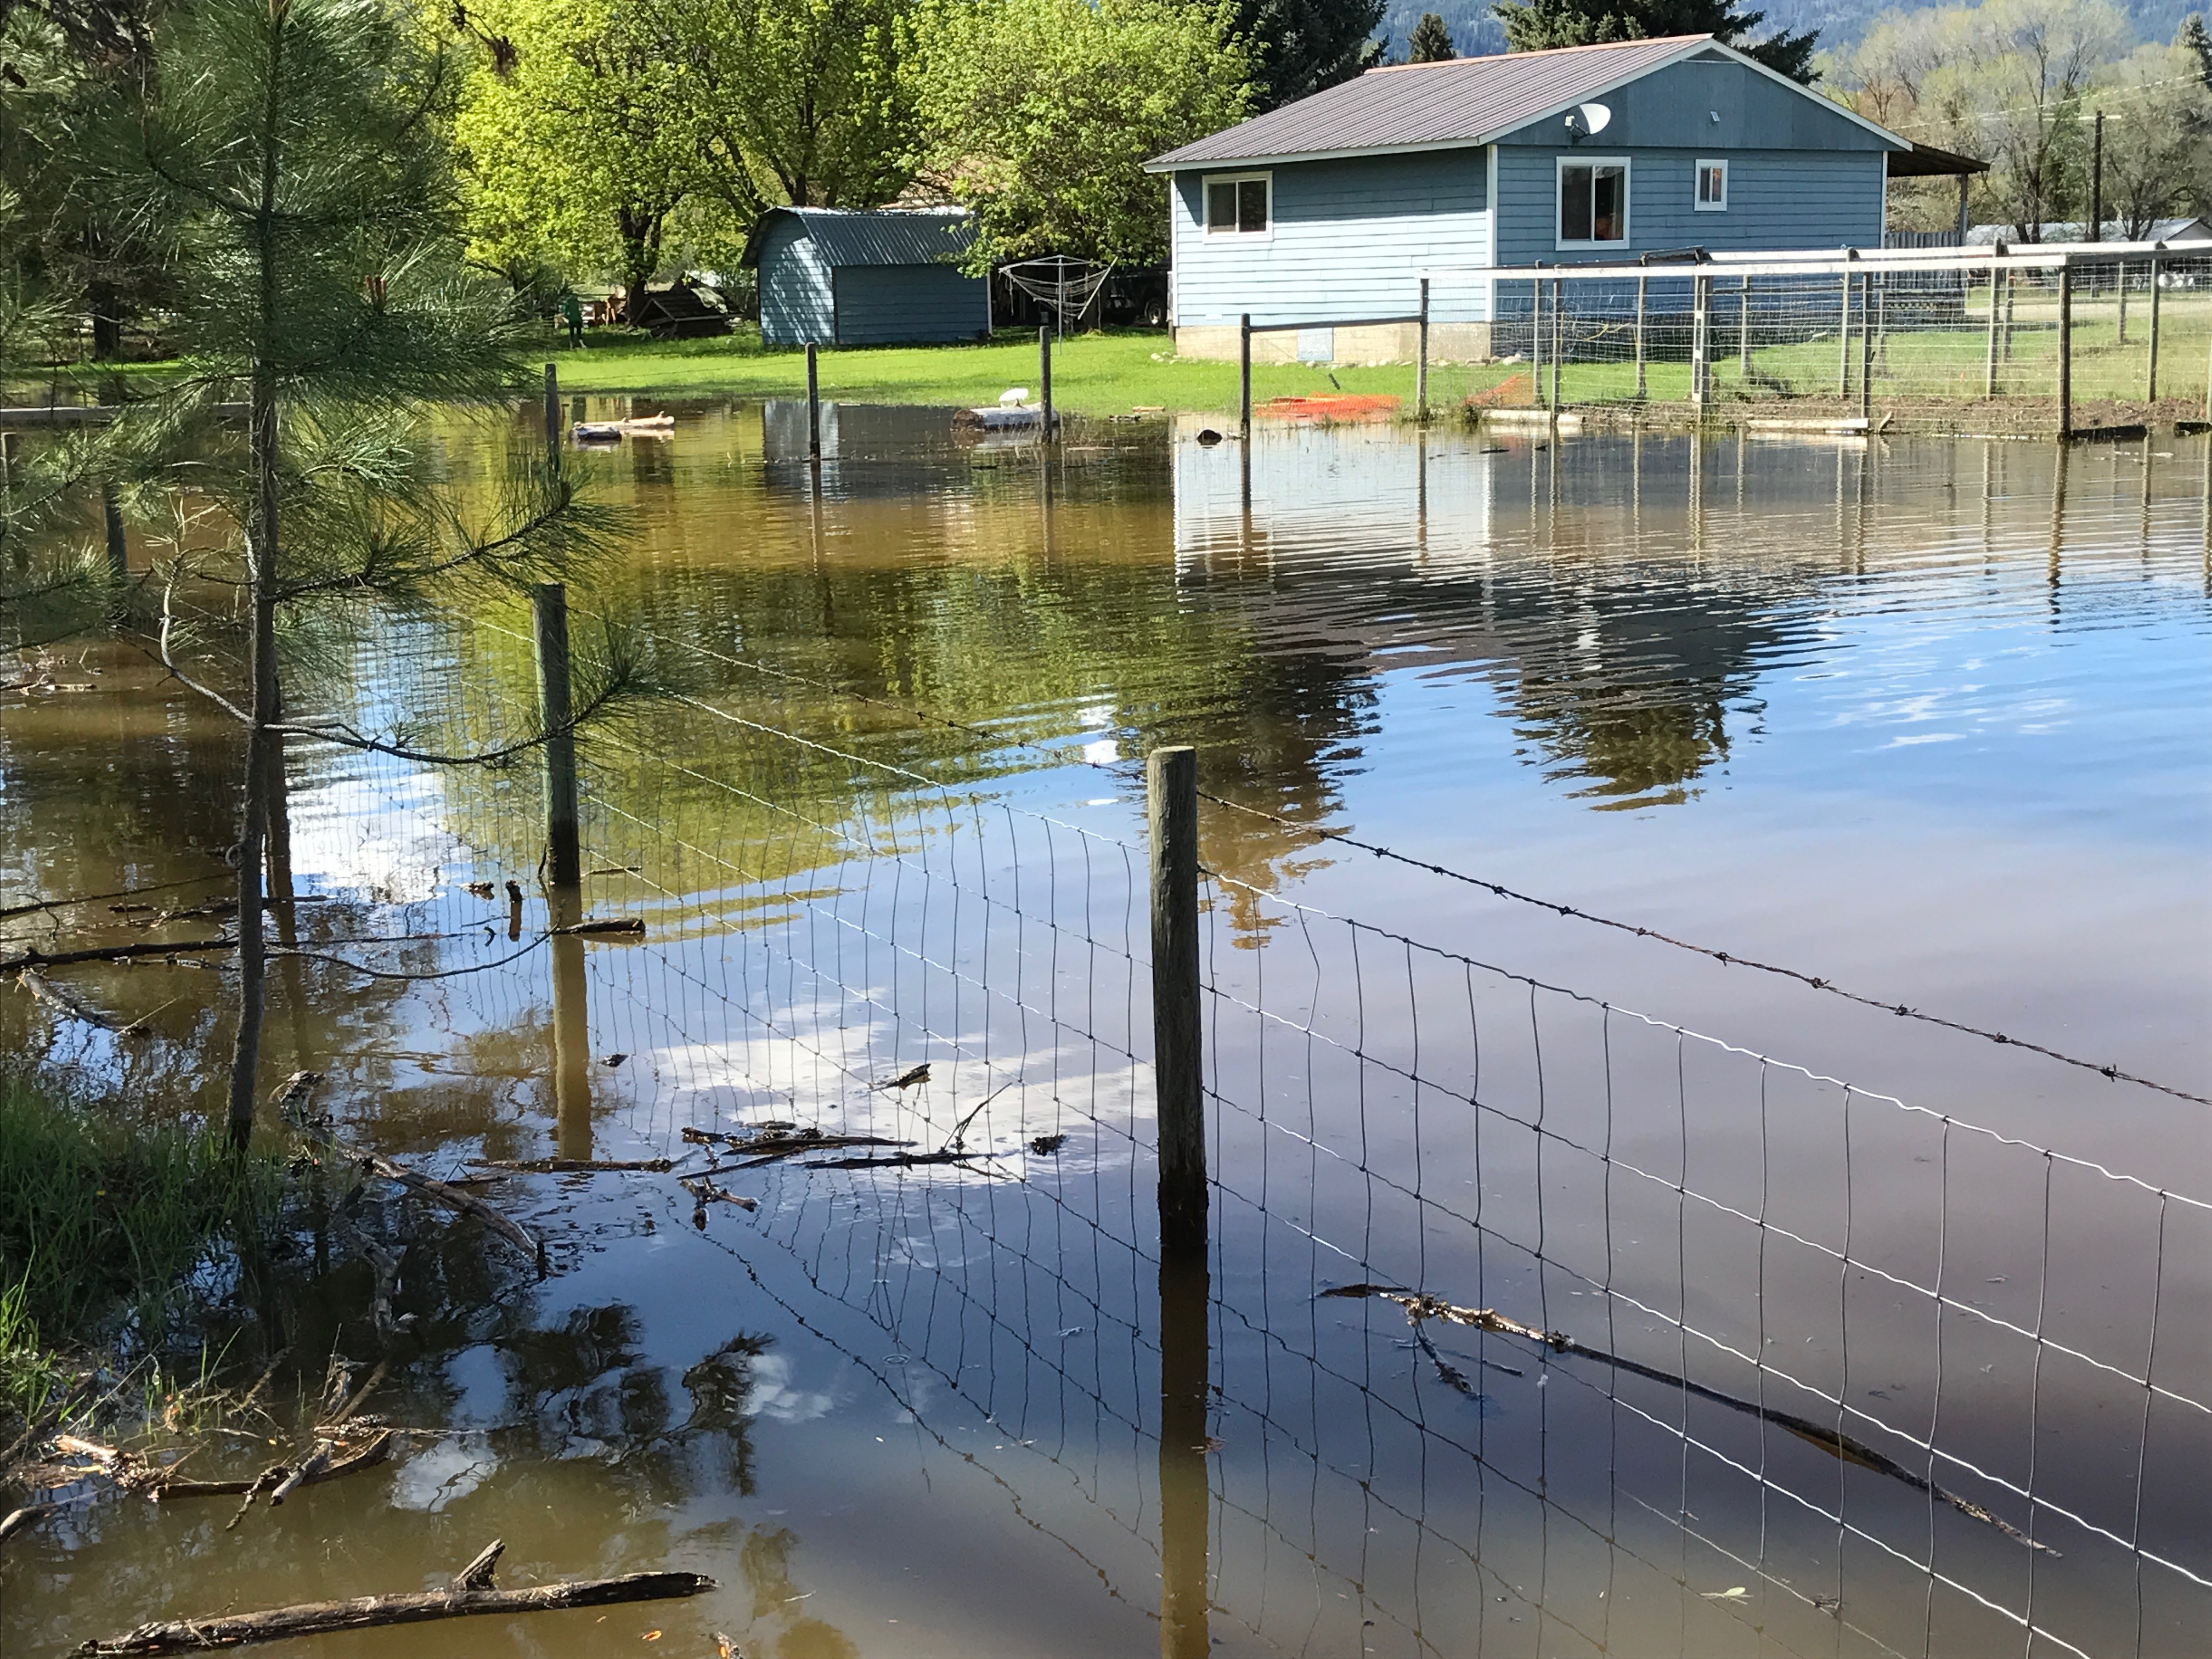 Evacuation order issued due to possible creek flooding in Fintry Delta